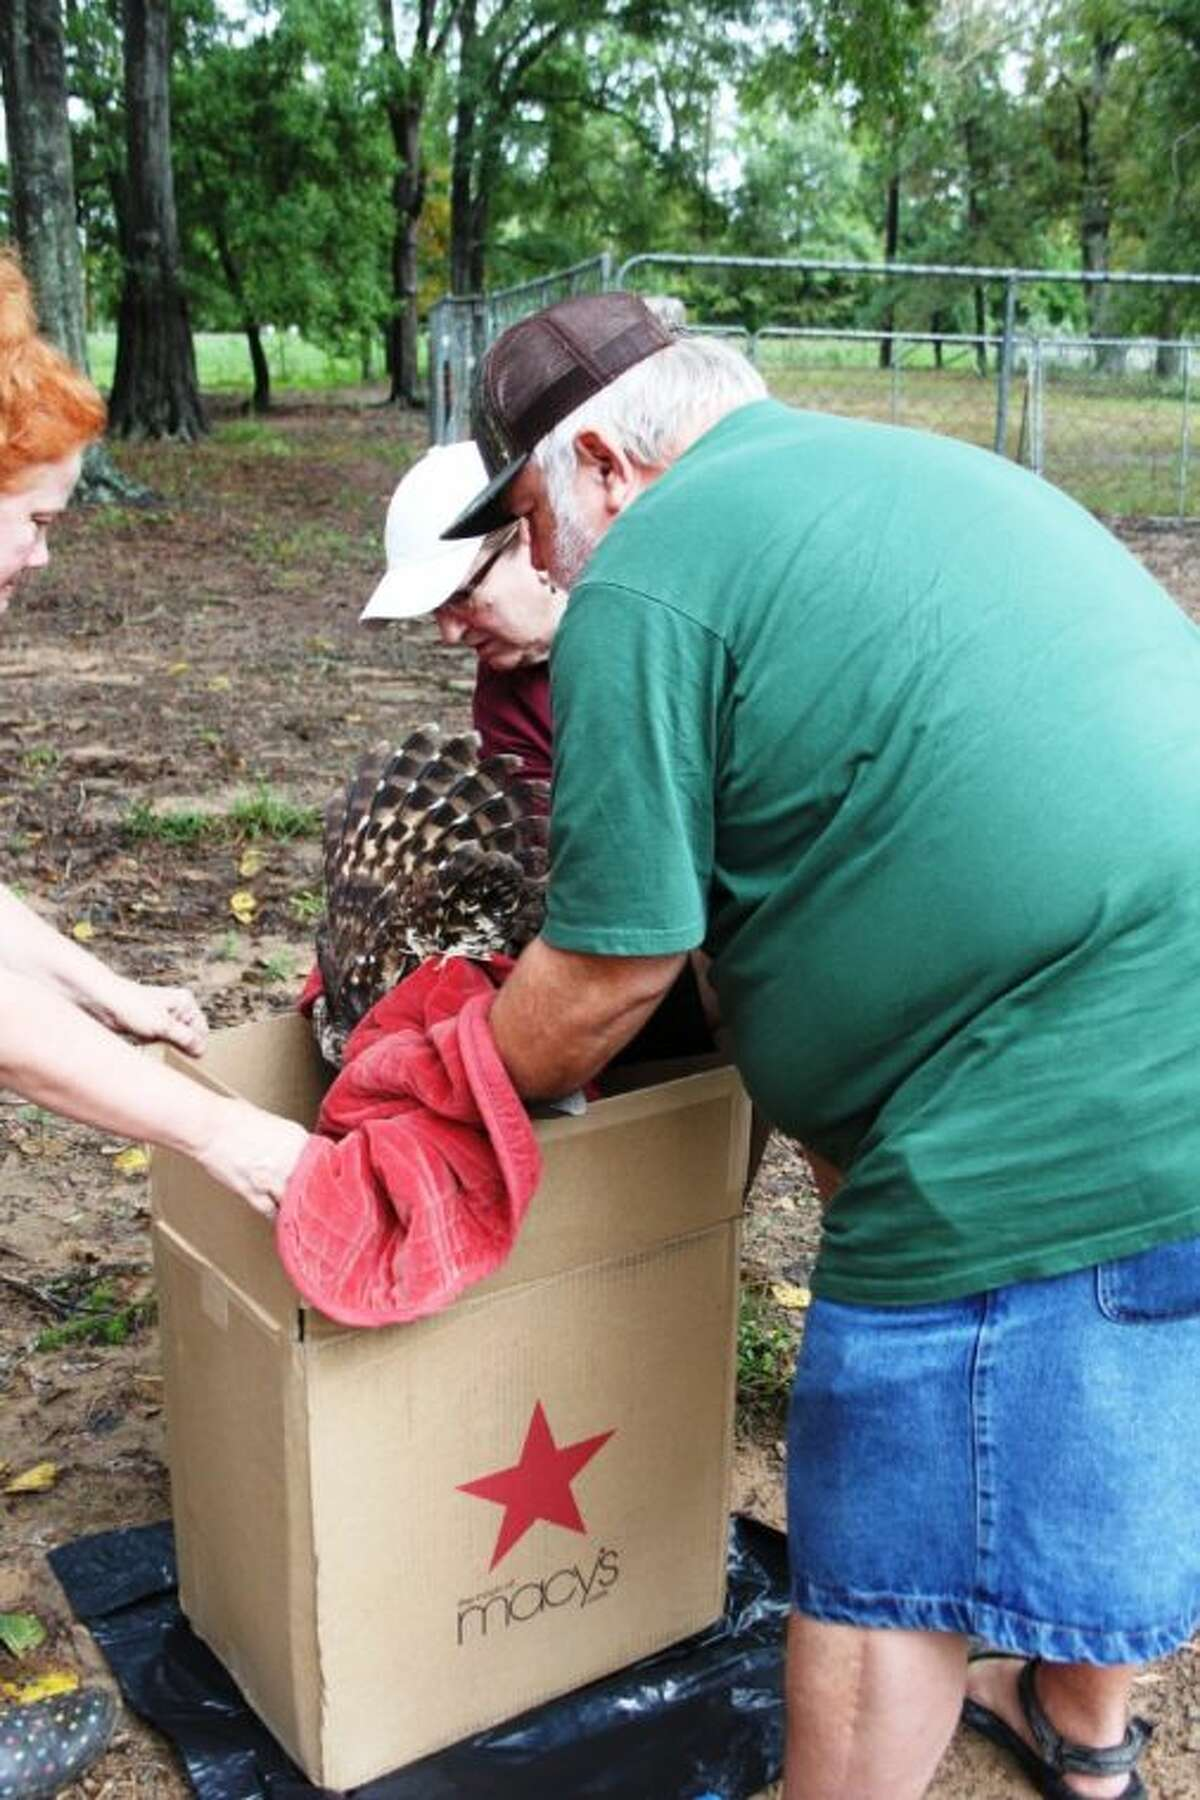 David and Susan Kalich (right), friends of Cookie McKee (left) helped McKee capture a wounded barred owl on Thursday, Oct. 31, at McKee's Snuff Ridge Ranch on FM 1010. The owl was then taken to a wildlife rehabilitator who is expected to nurse the owl back to good health.